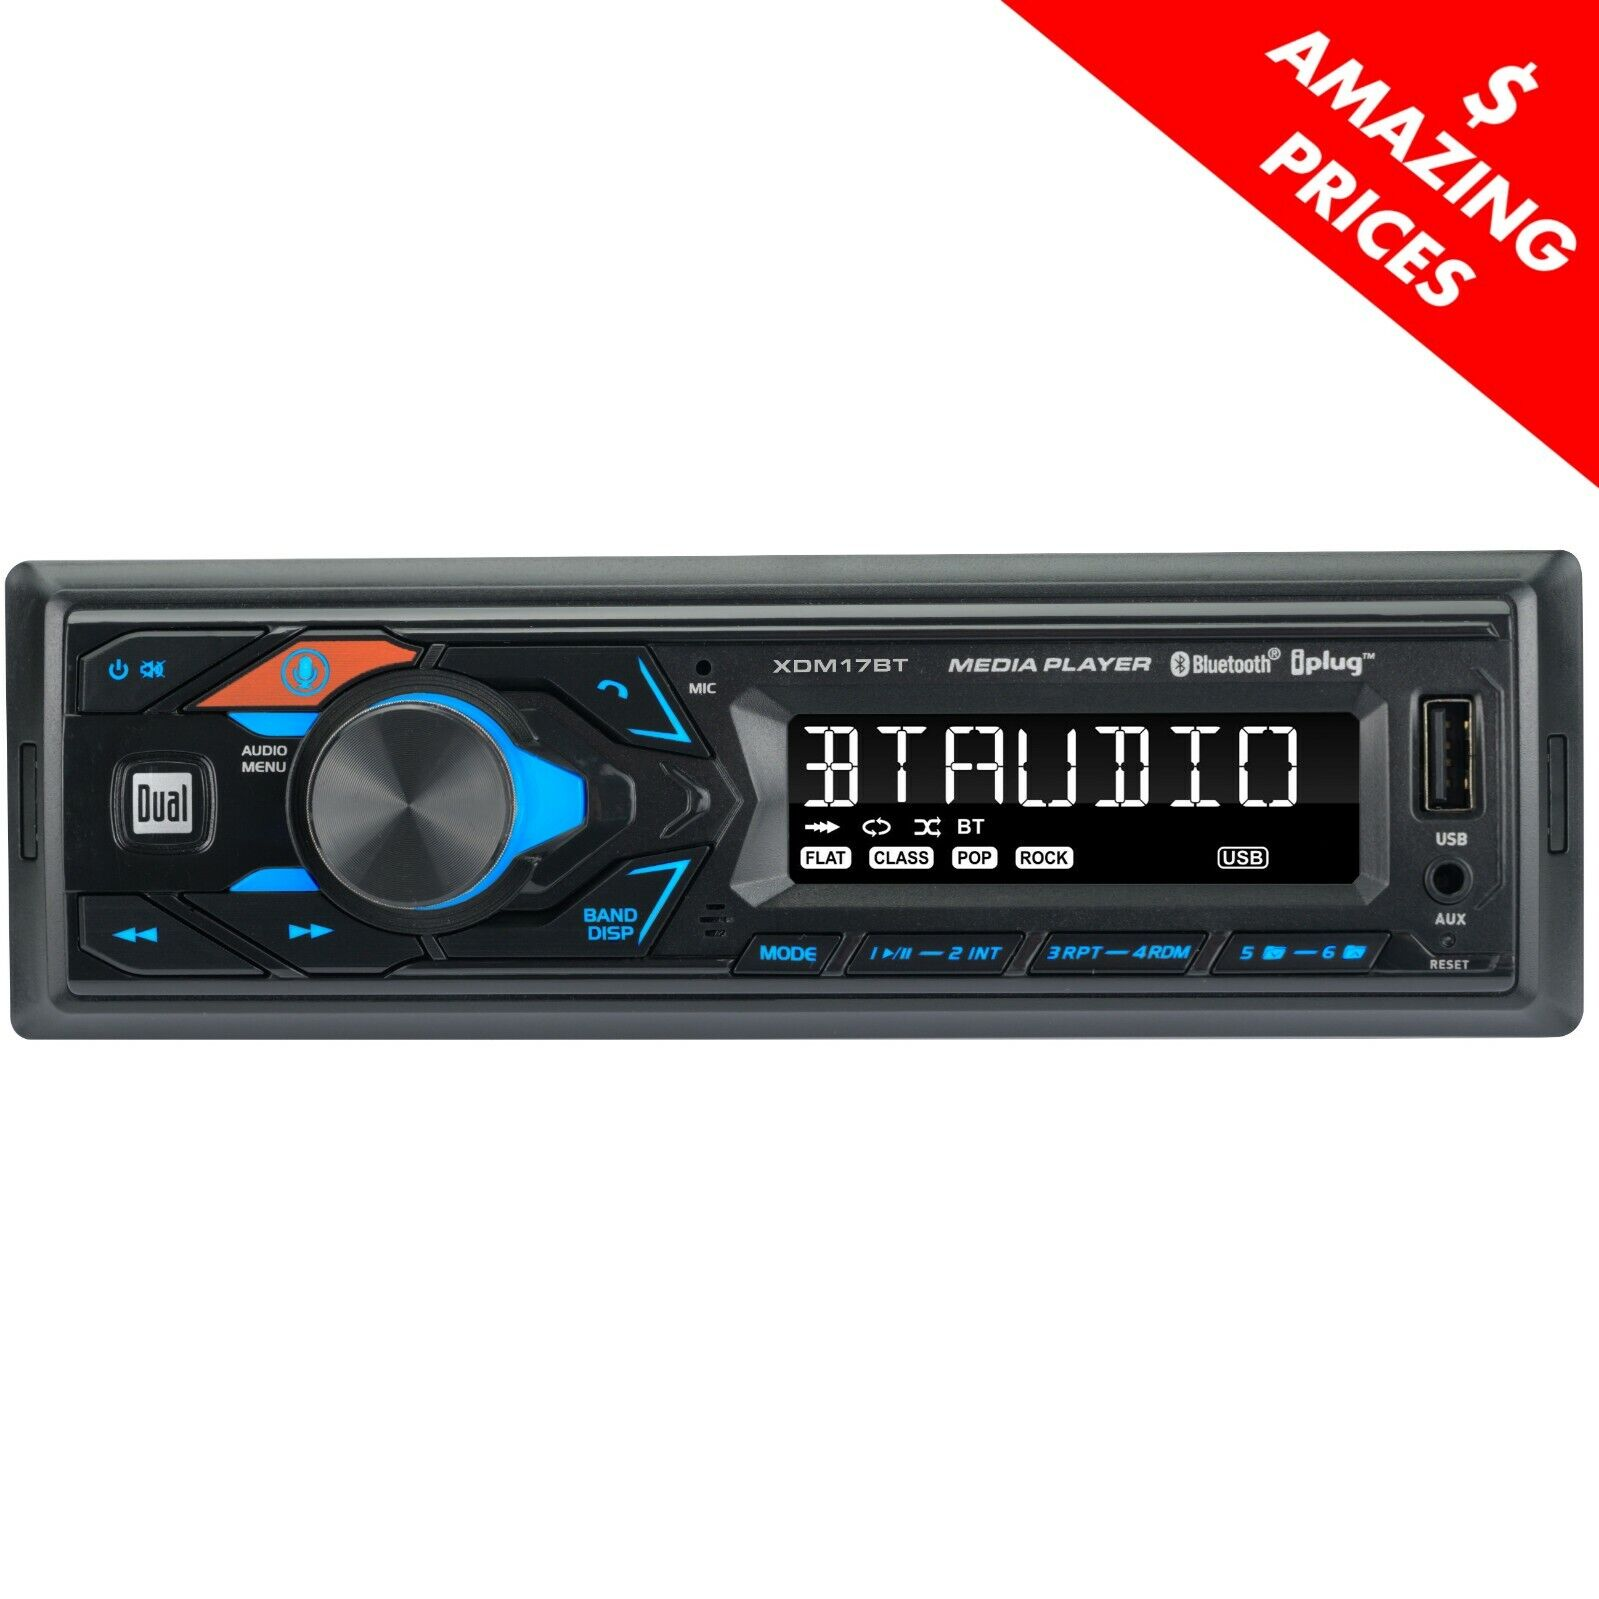 hd lcd single din car stereo receiver